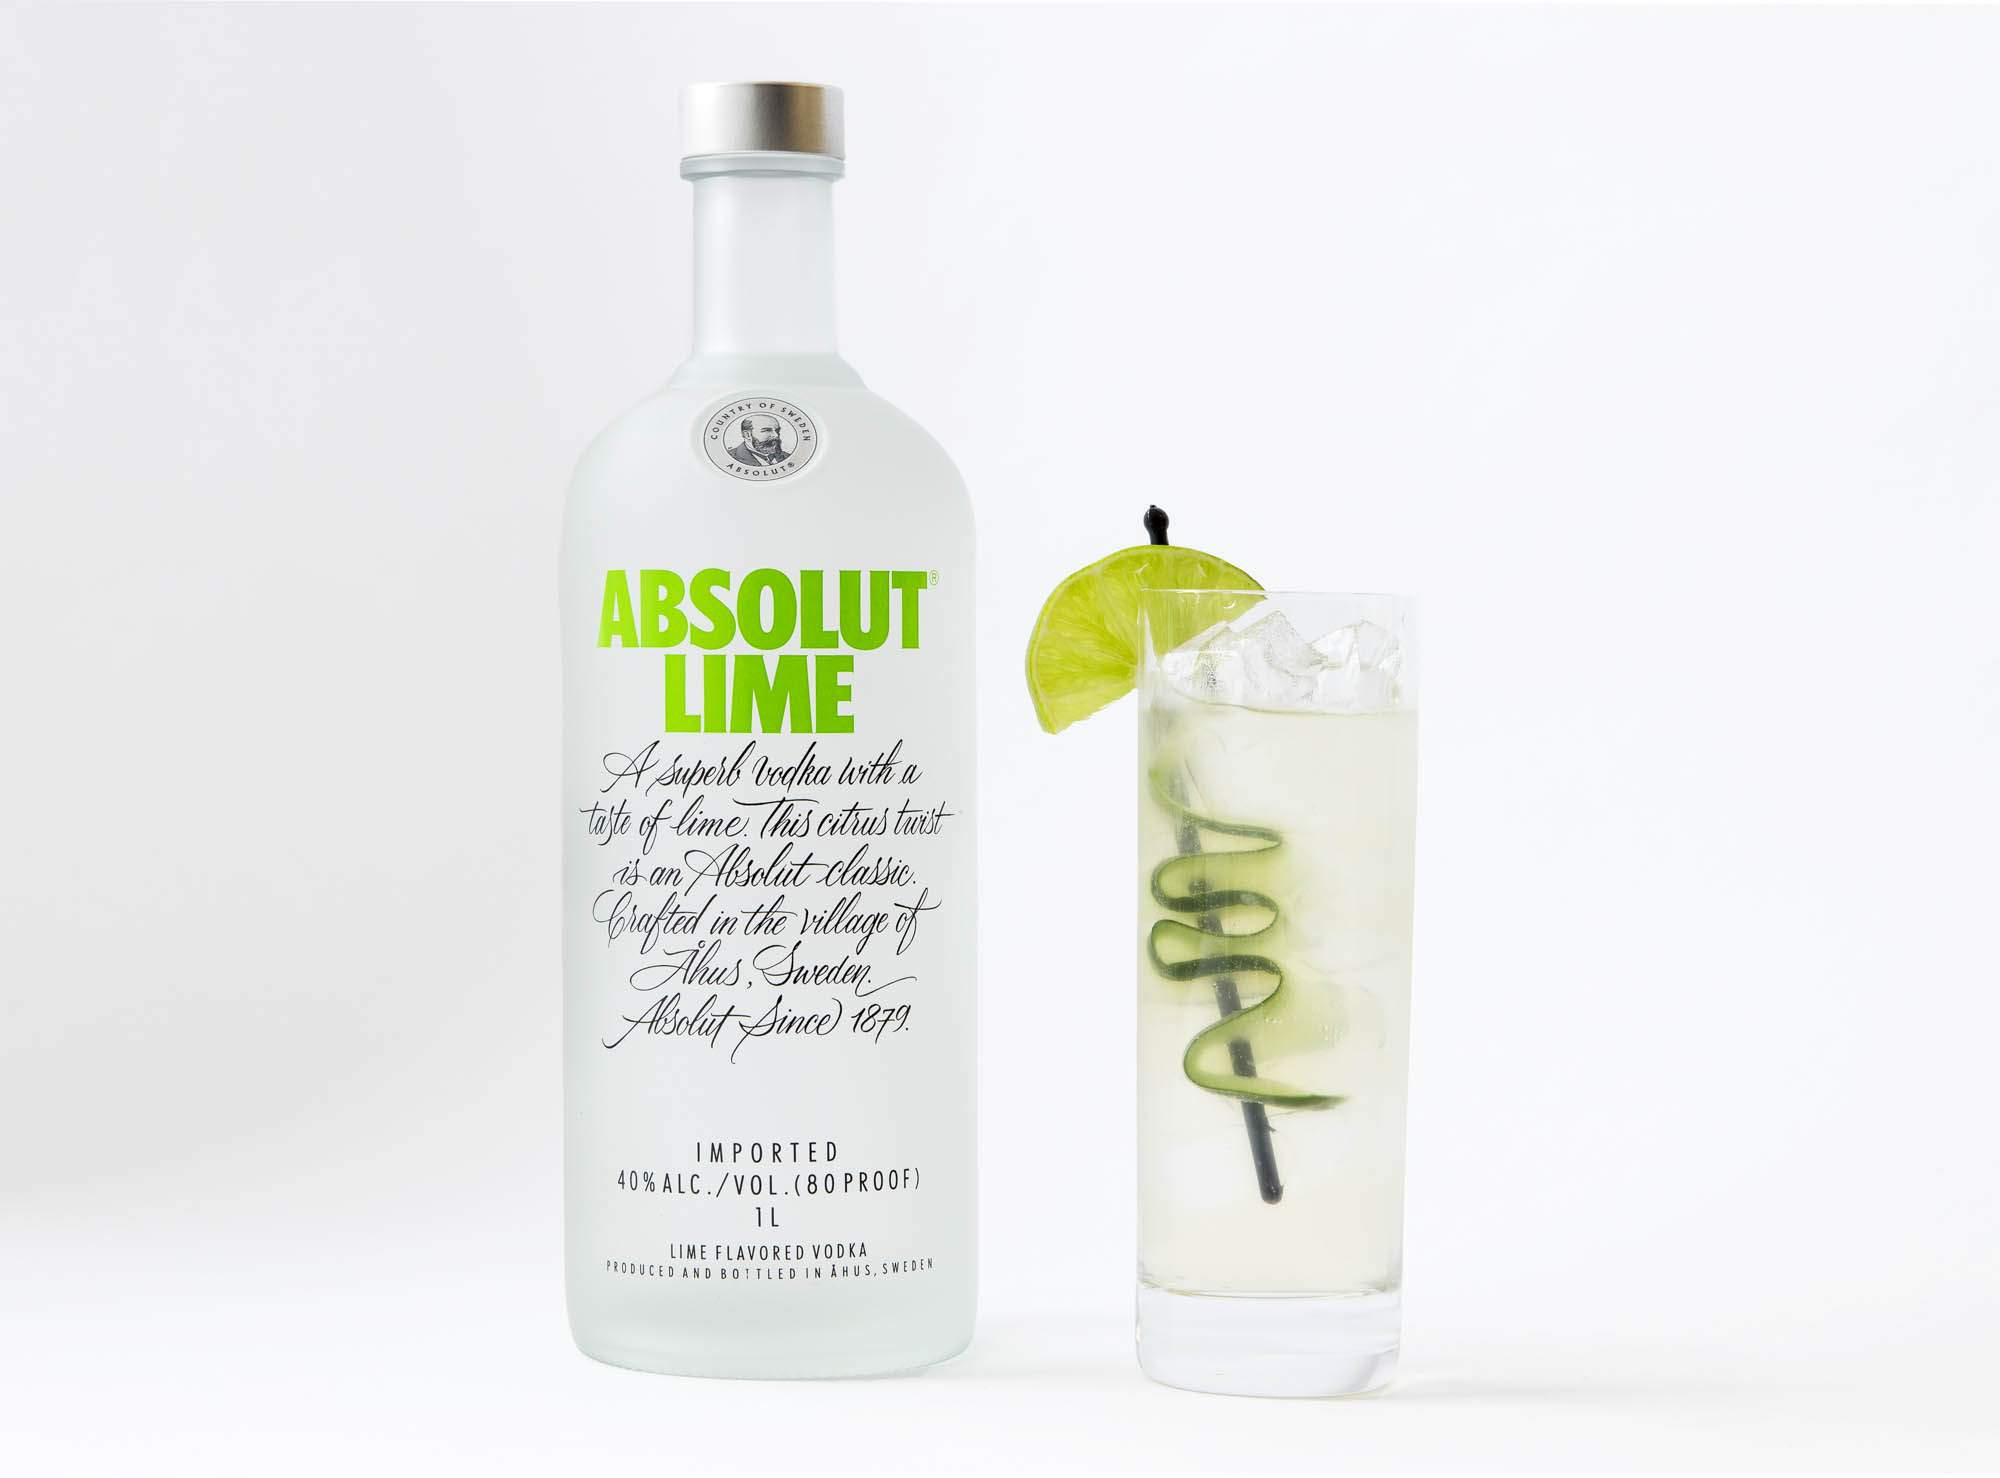 Flavored Vodka Is Moving On From Its Whipped Cream, Pb&j Past photo